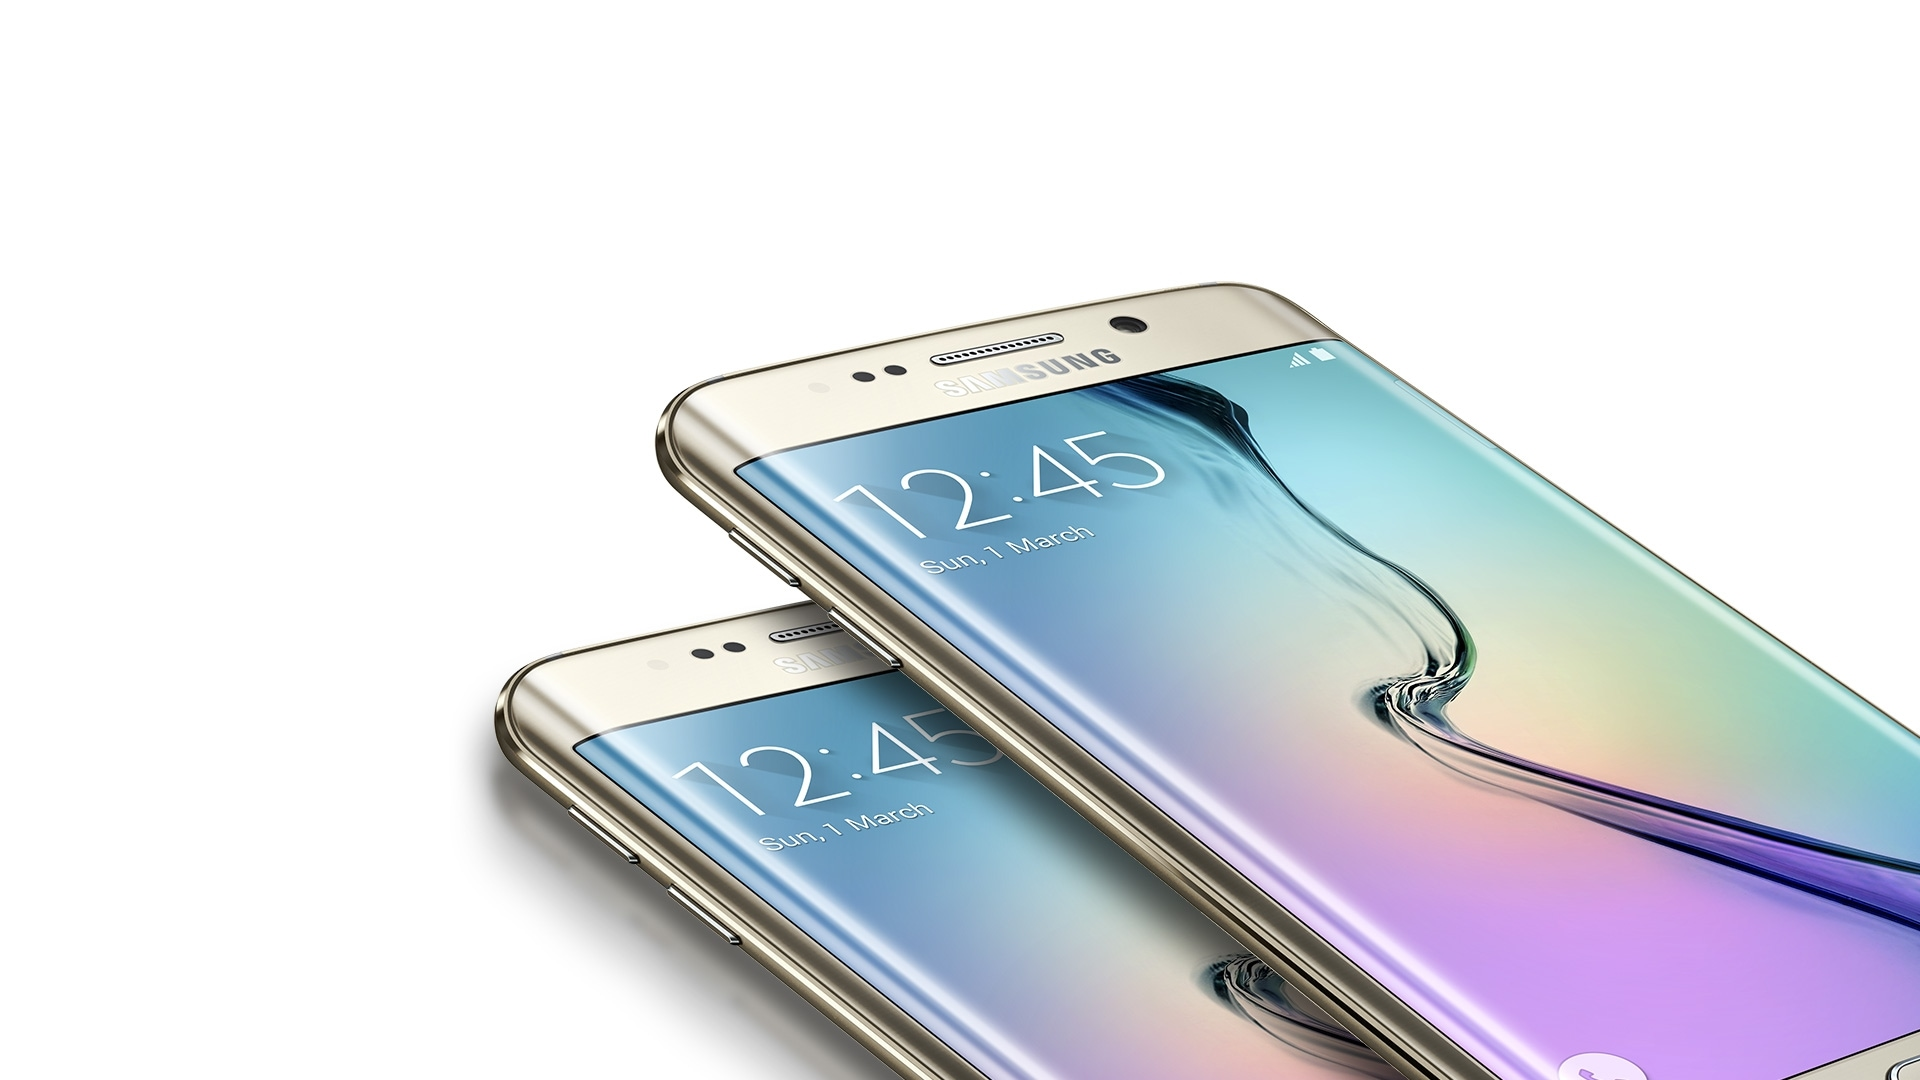 Galaxy S6 edge product images